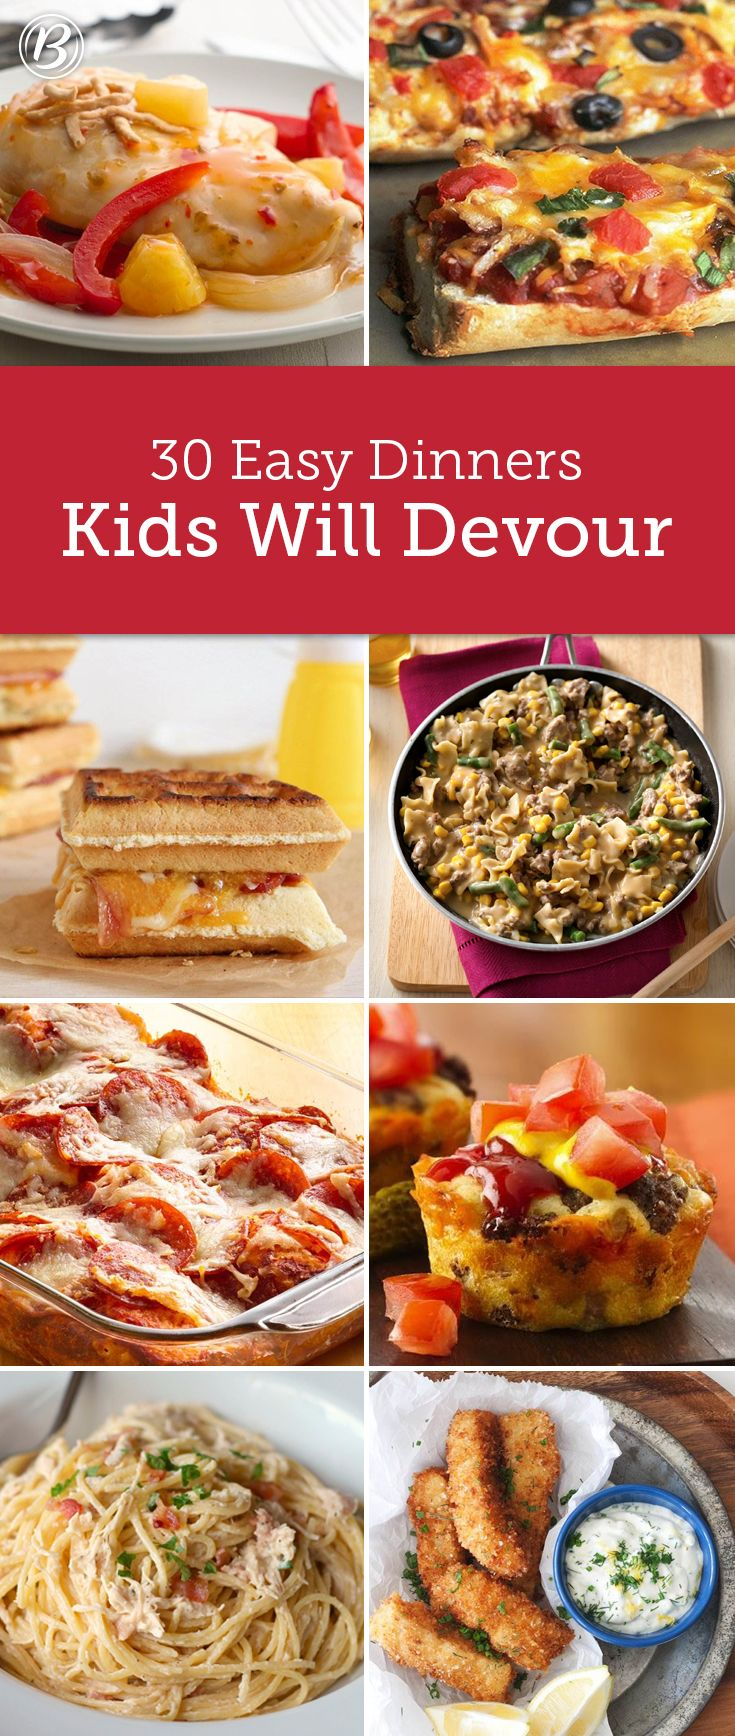 Keep your picky eaters happy by serving any one of these simple, kid-friendly meals.